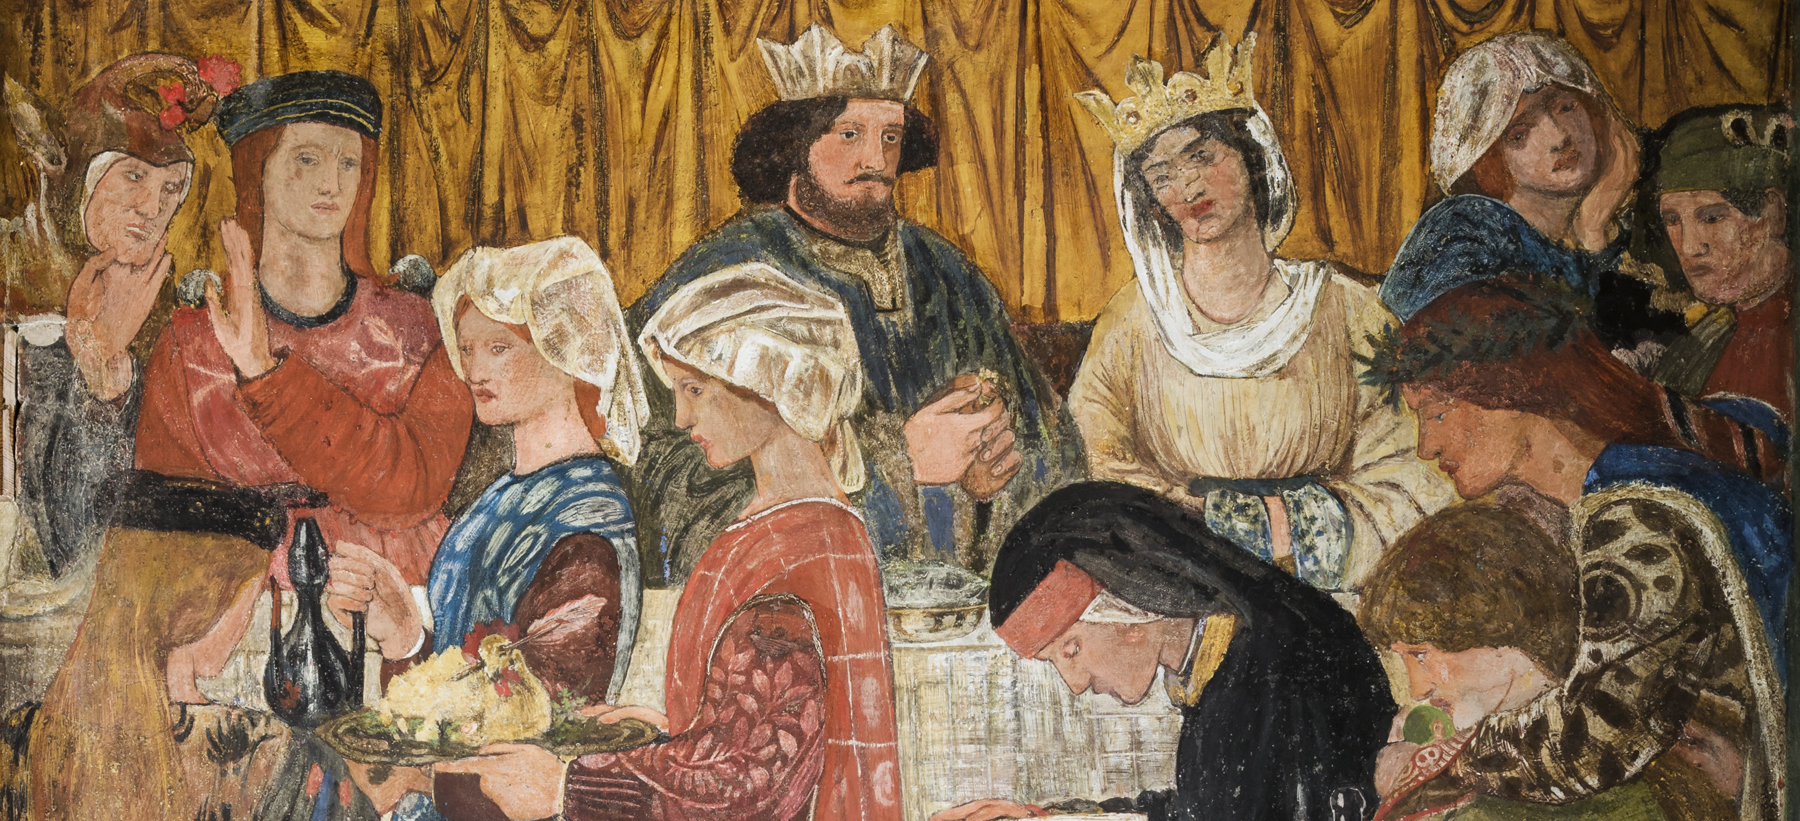 Drawing room mural at Morris's first married home, Red House. Painted by Morris, Rossetti, Burne-Jones and Webb.